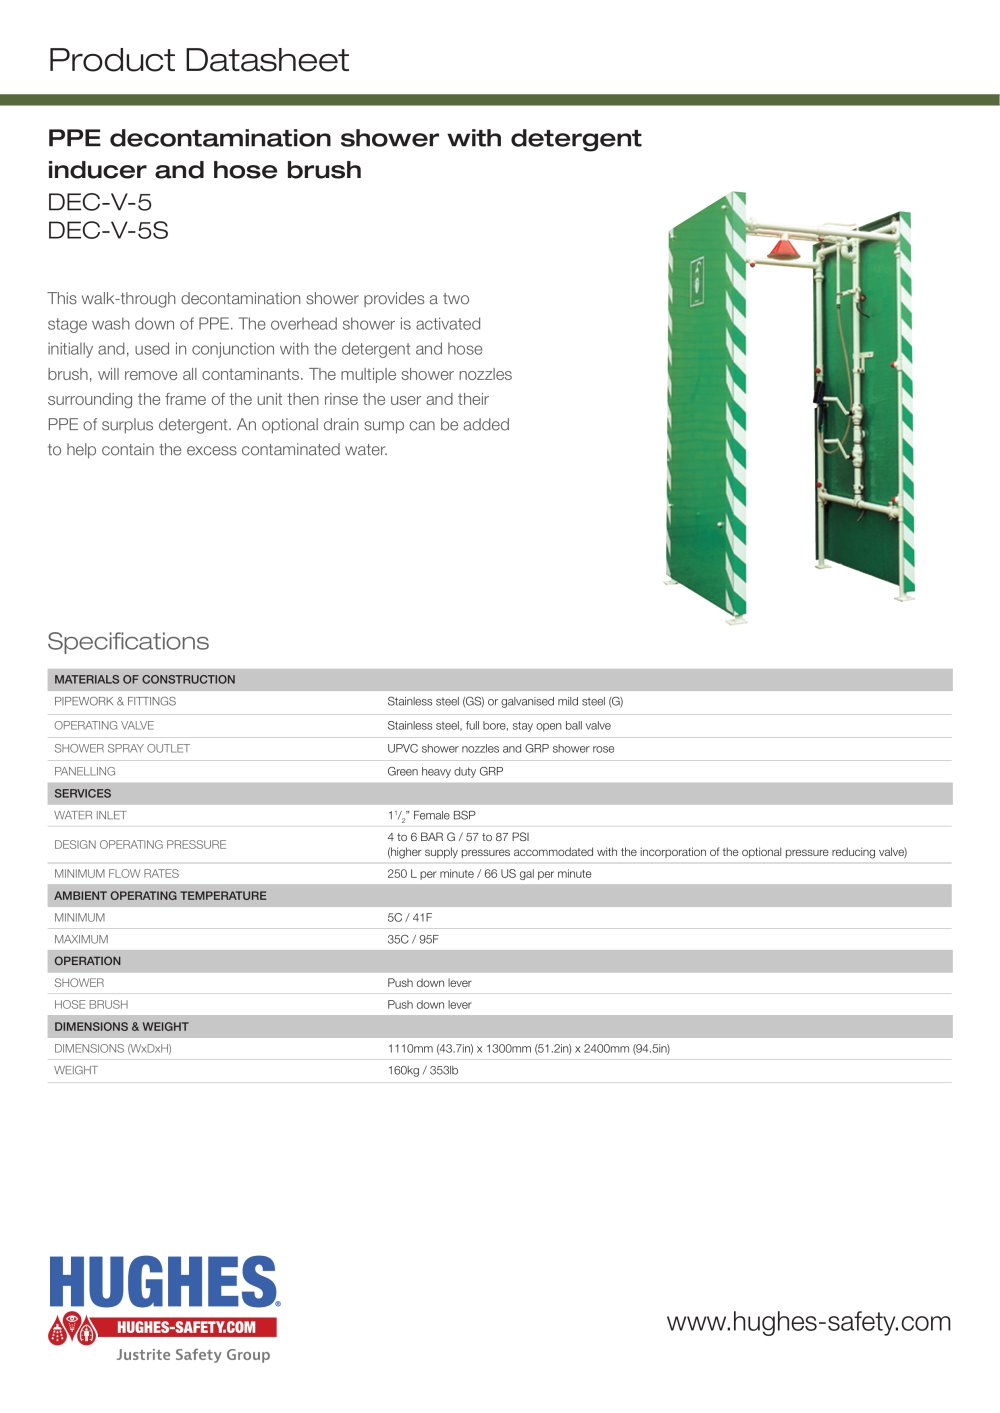 DEC-V-5 Product Datasheet - Hughes Safety Showers - PDF Catalogue ...